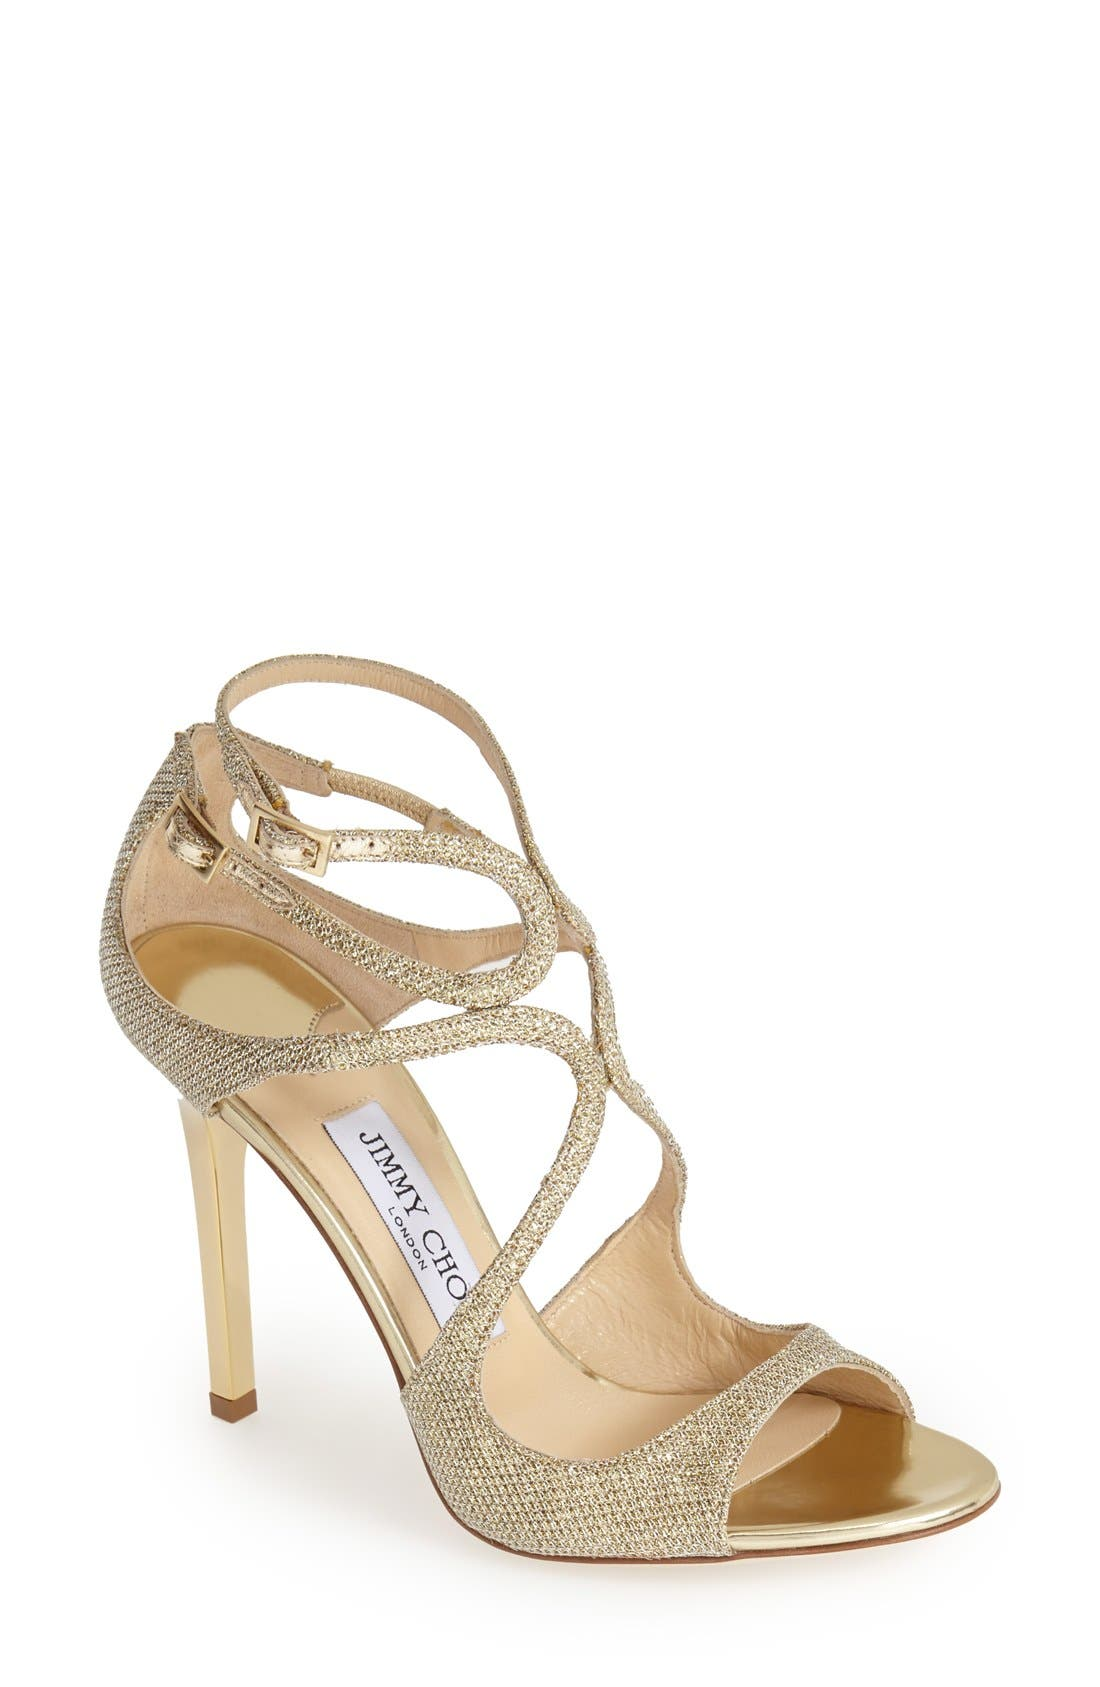 Alternate Image 1 Selected - Jimmy Choo 'Lang' Sandal (Women)